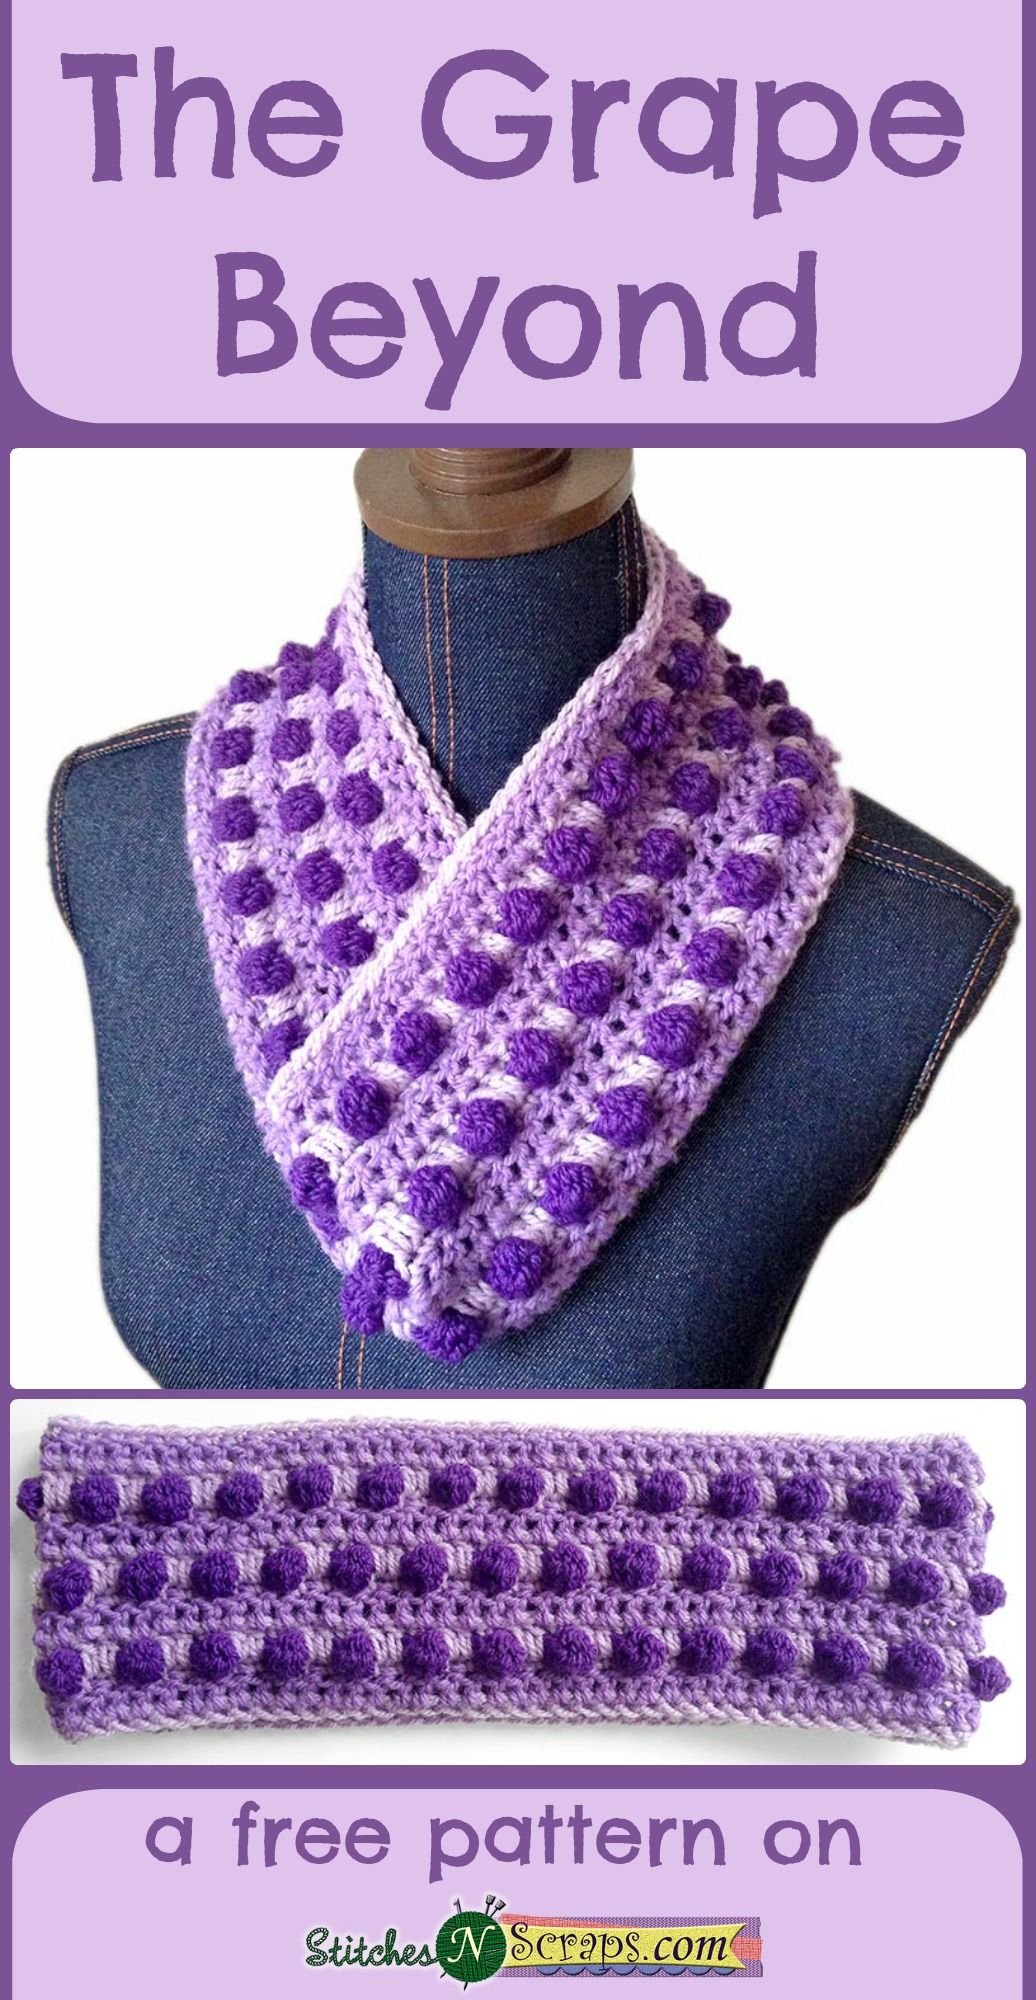 Free Pattern - The Grape Beyond